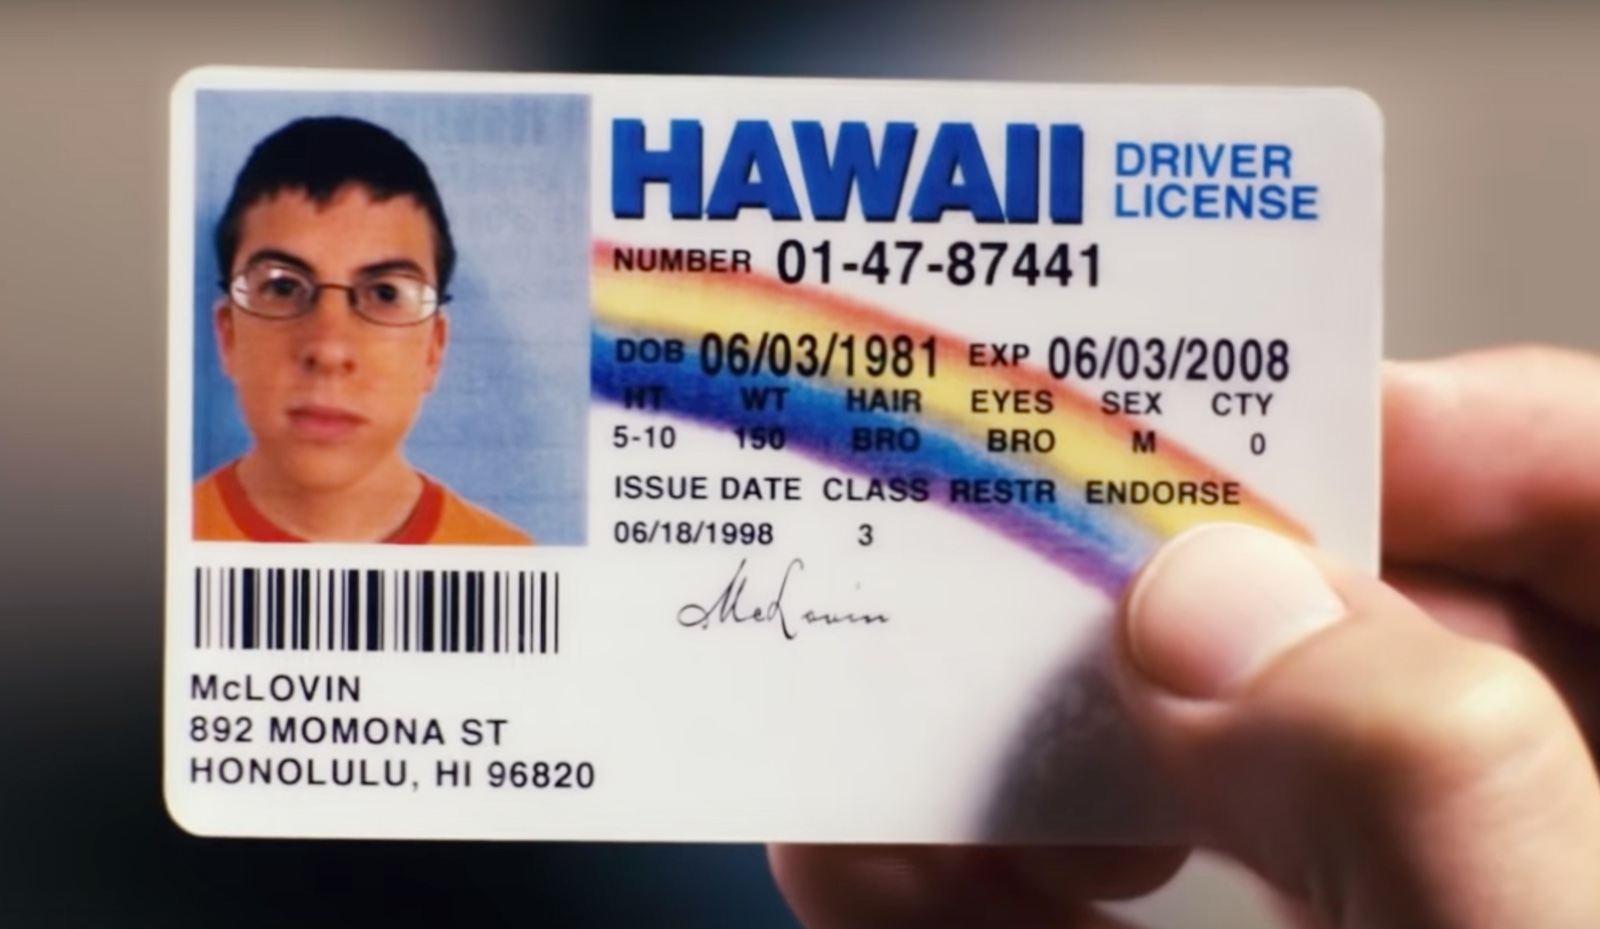 """""""McLovin's"""" Hawaii driver's license, which indicates that his birthdate is June 3, 1981."""